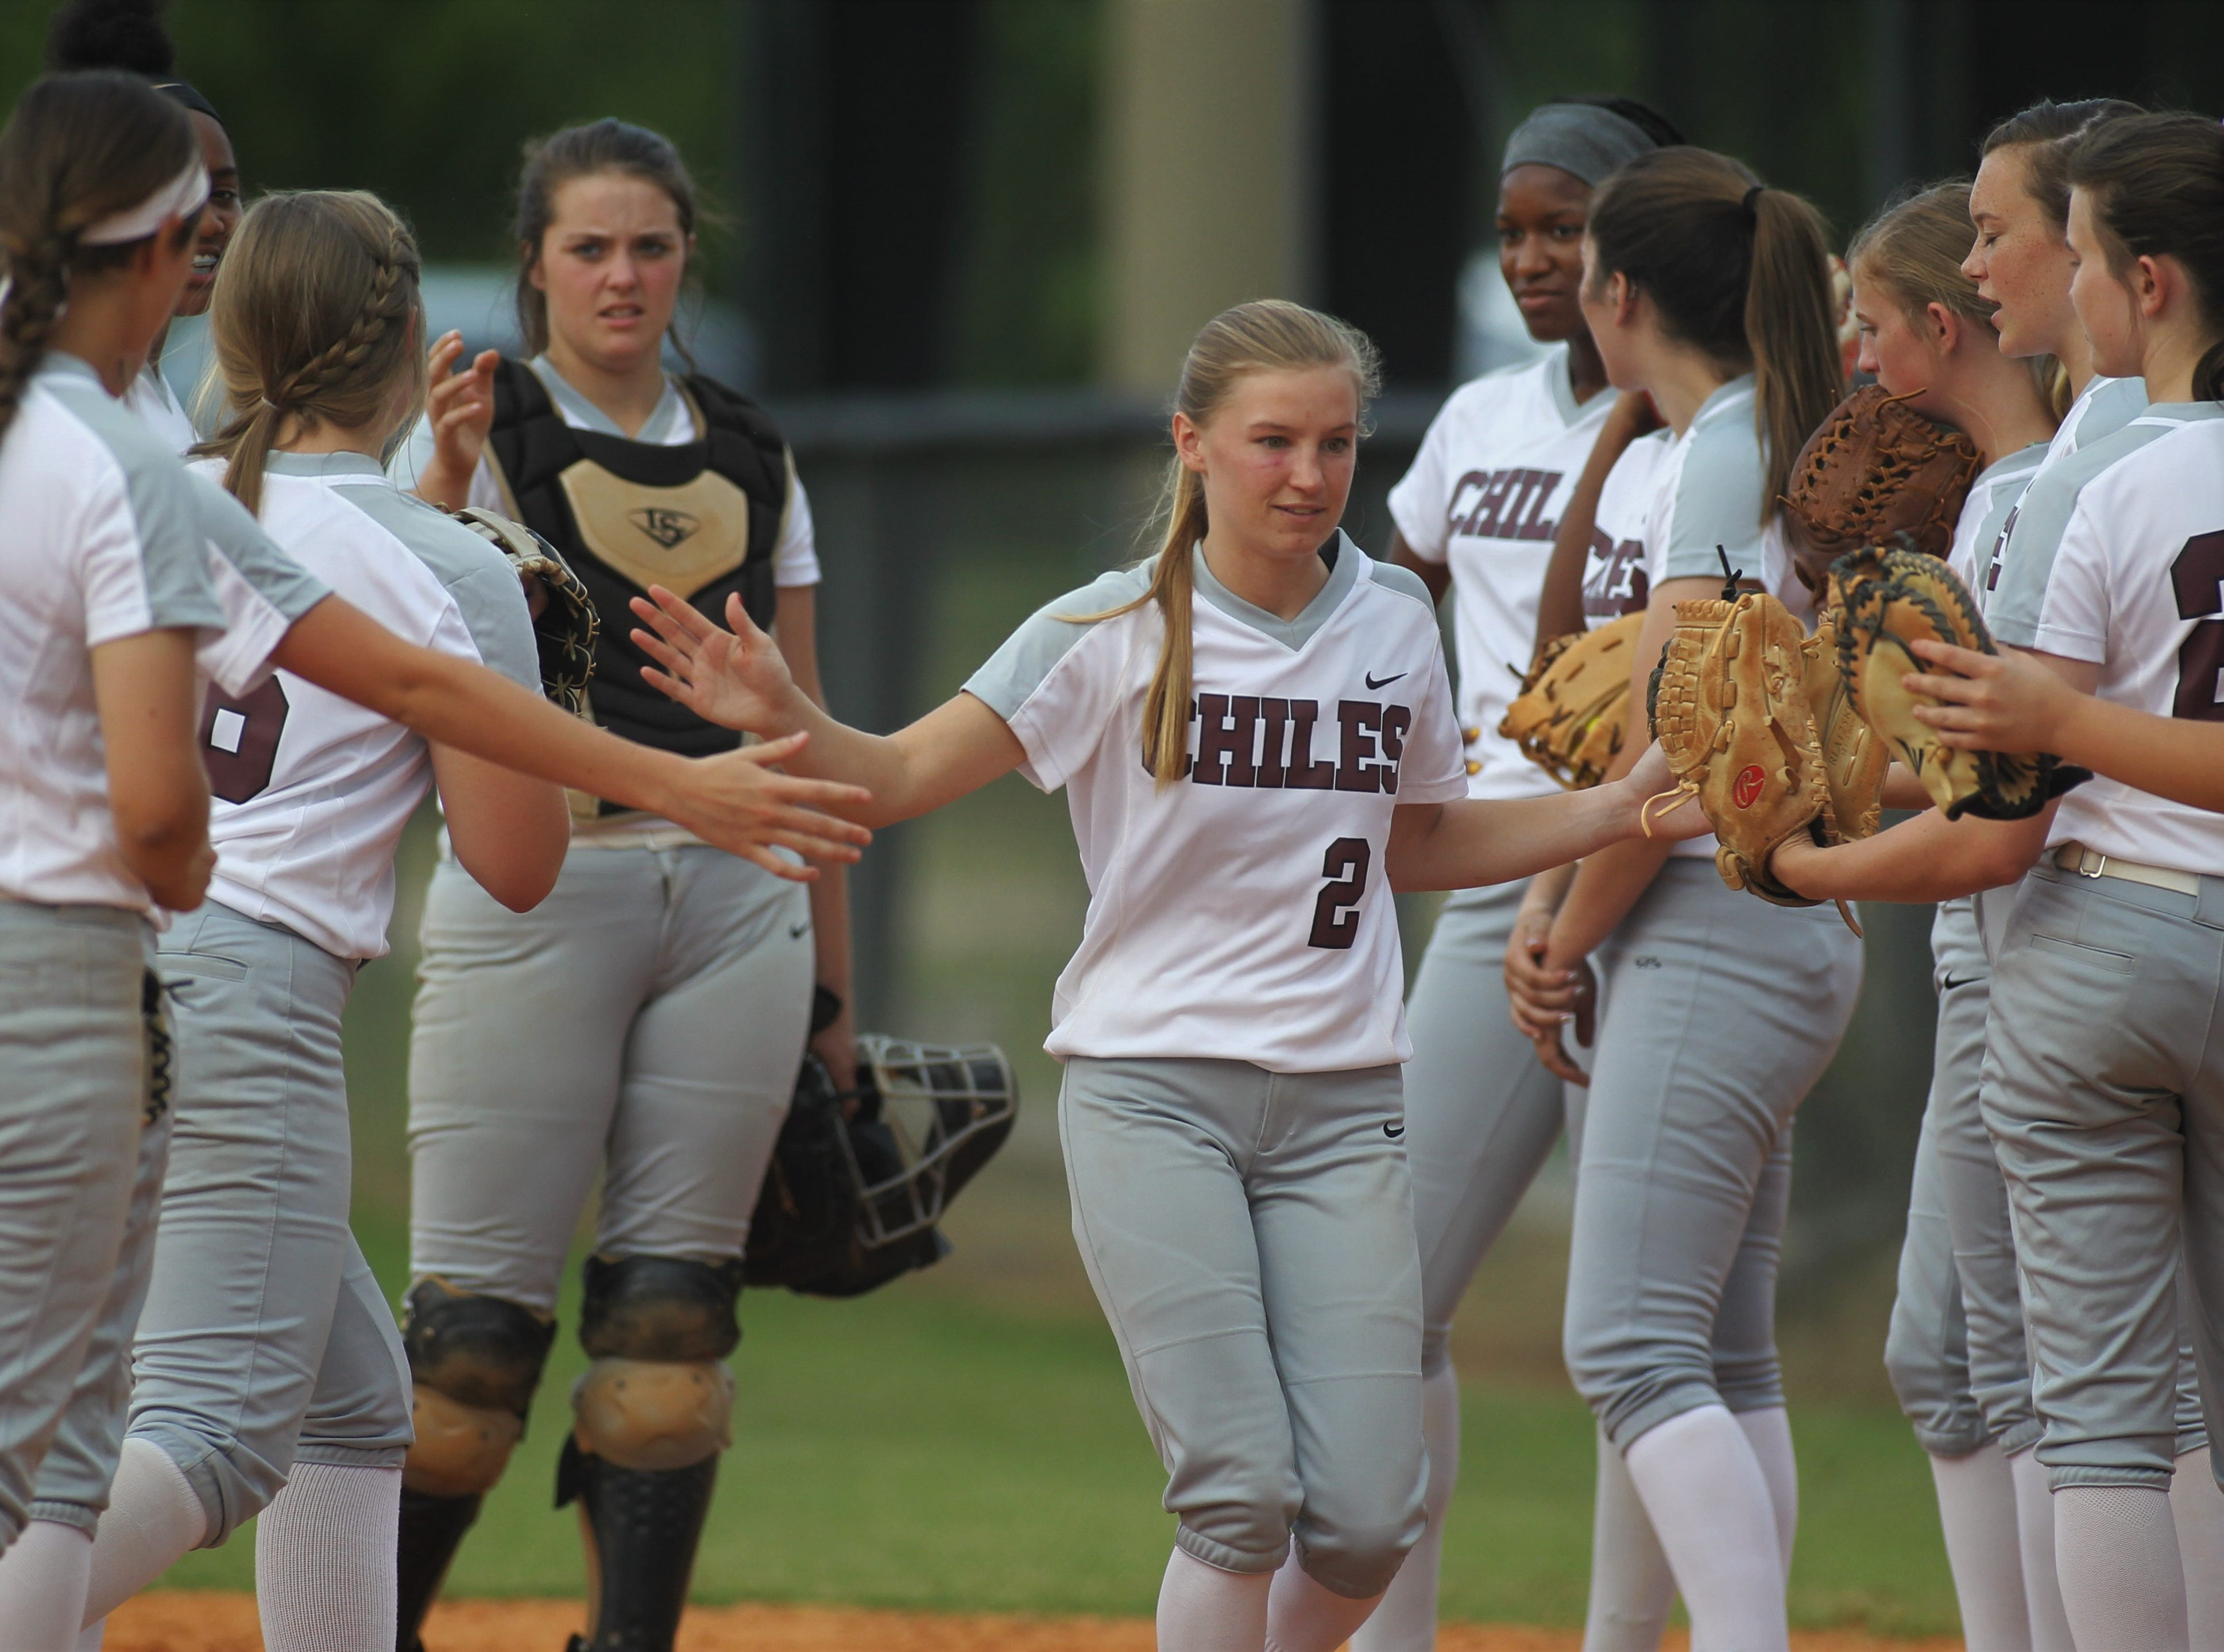 Chiles senior Abbie Townley gets introduced pre-game as the Timberwolves beat Atlantic Coast 6-4 during a Region 1-8A quarterfinal softball game on Wednesday, May 8, 2019.